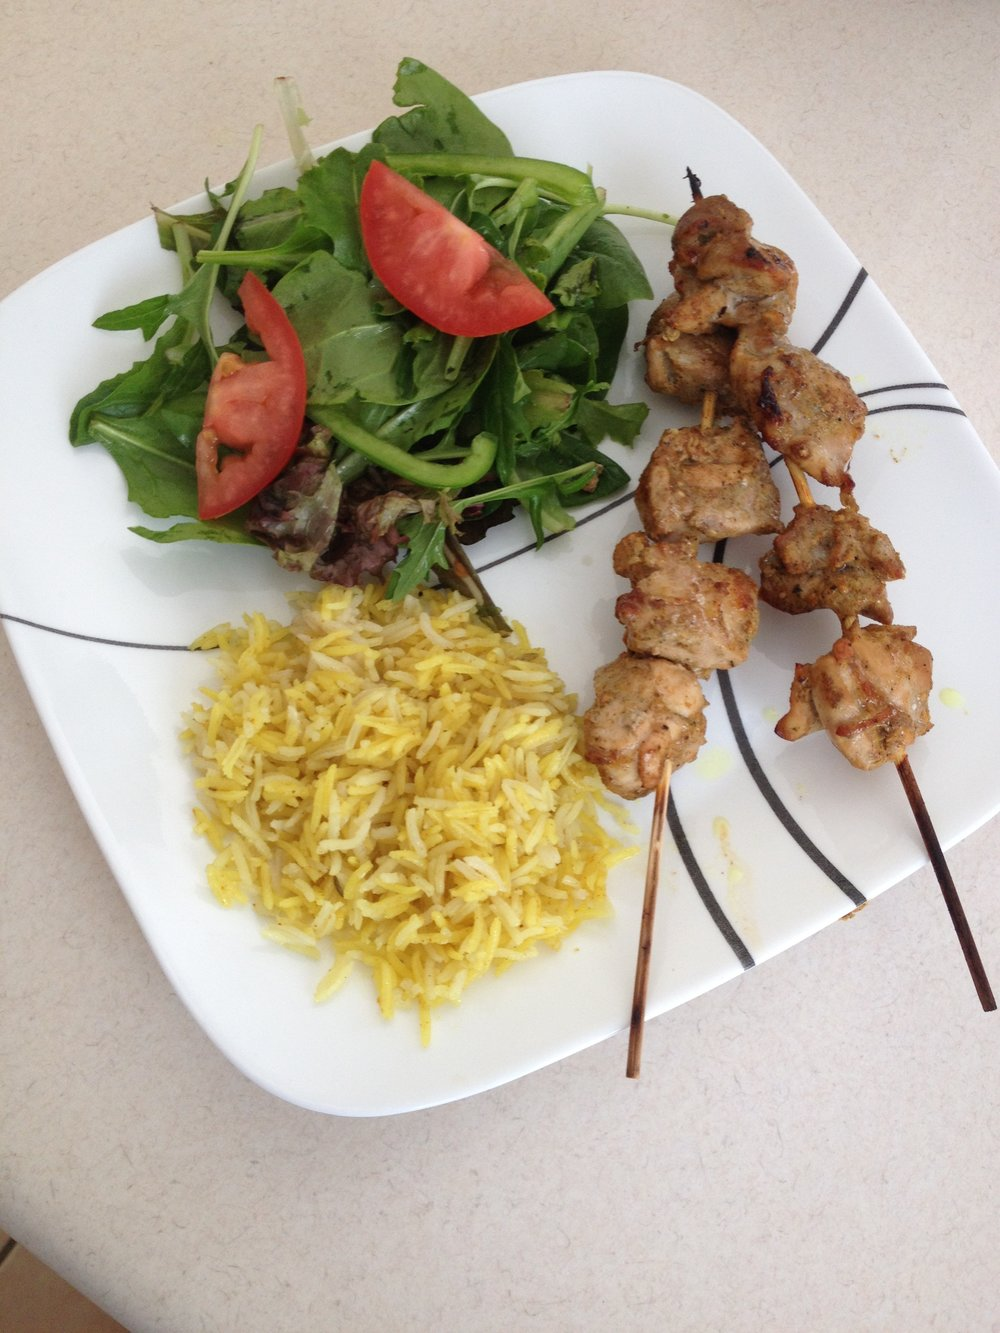 A Mediterranean Meal: Lebanese Chicken Kebabs with Saffron Rice and Garden Salad.